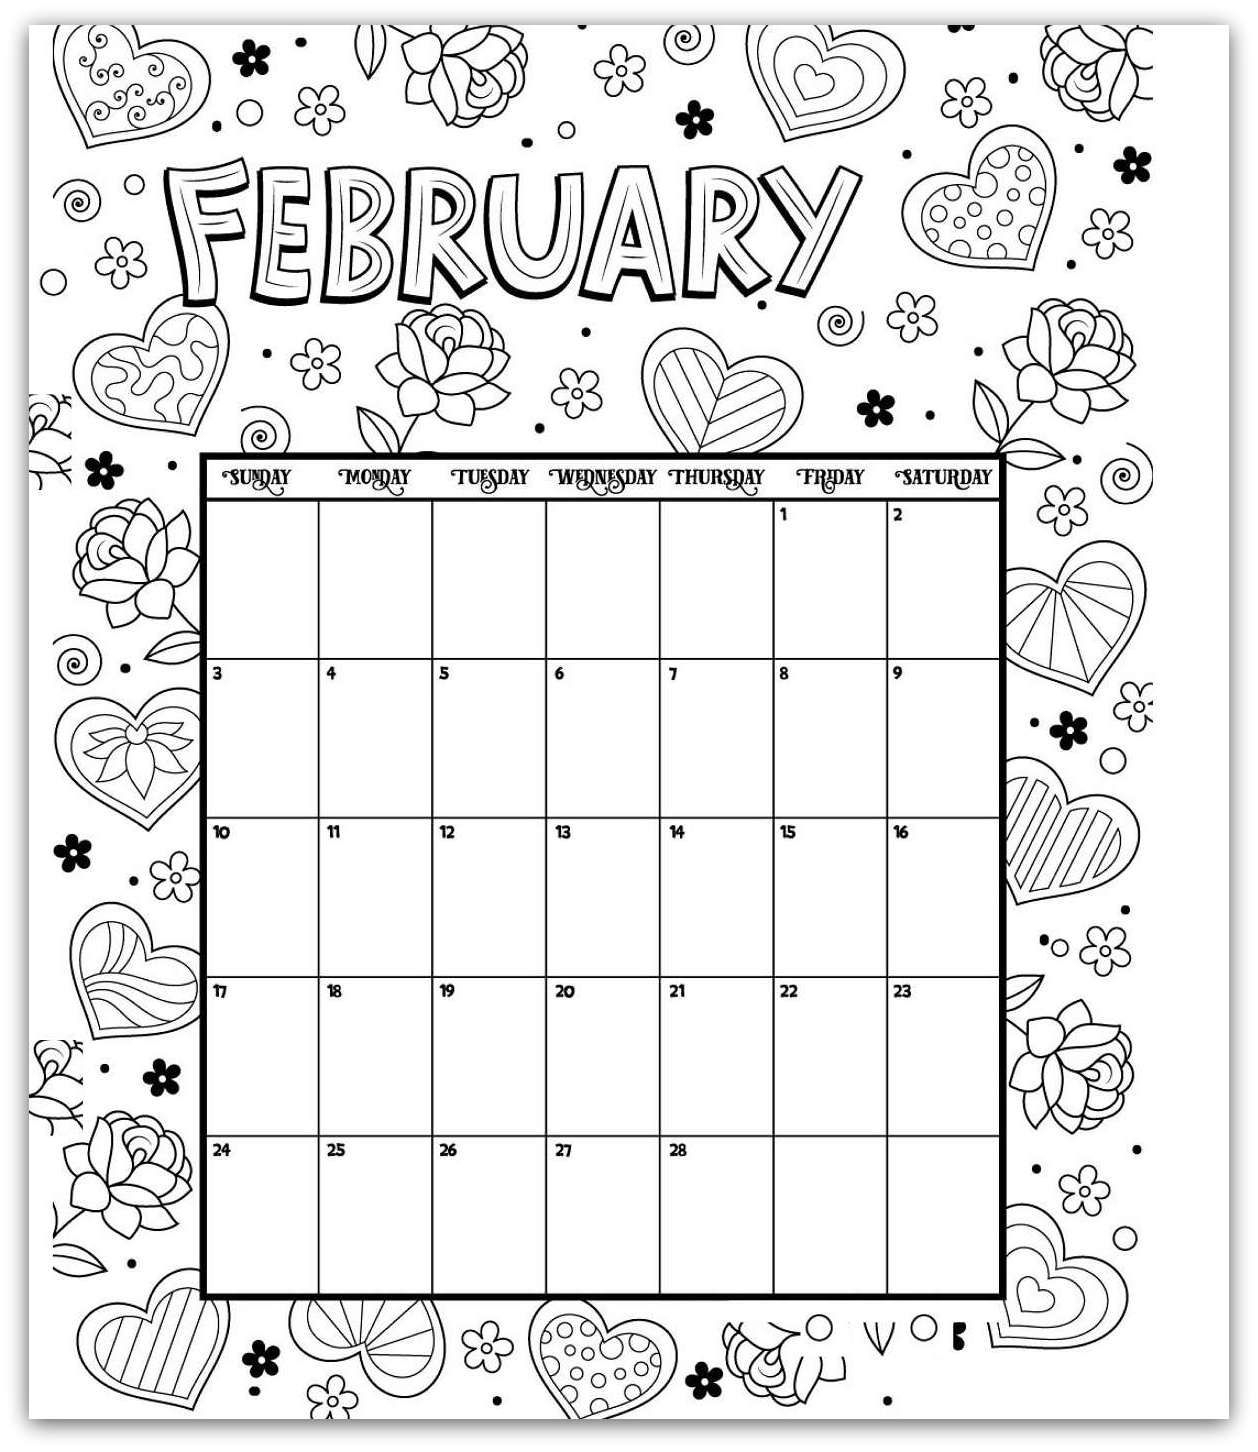 February 2019 Coloring Page Printable Calendar | 2019 Calendars throughout Coloring Pages October Calendar 2019 Adults